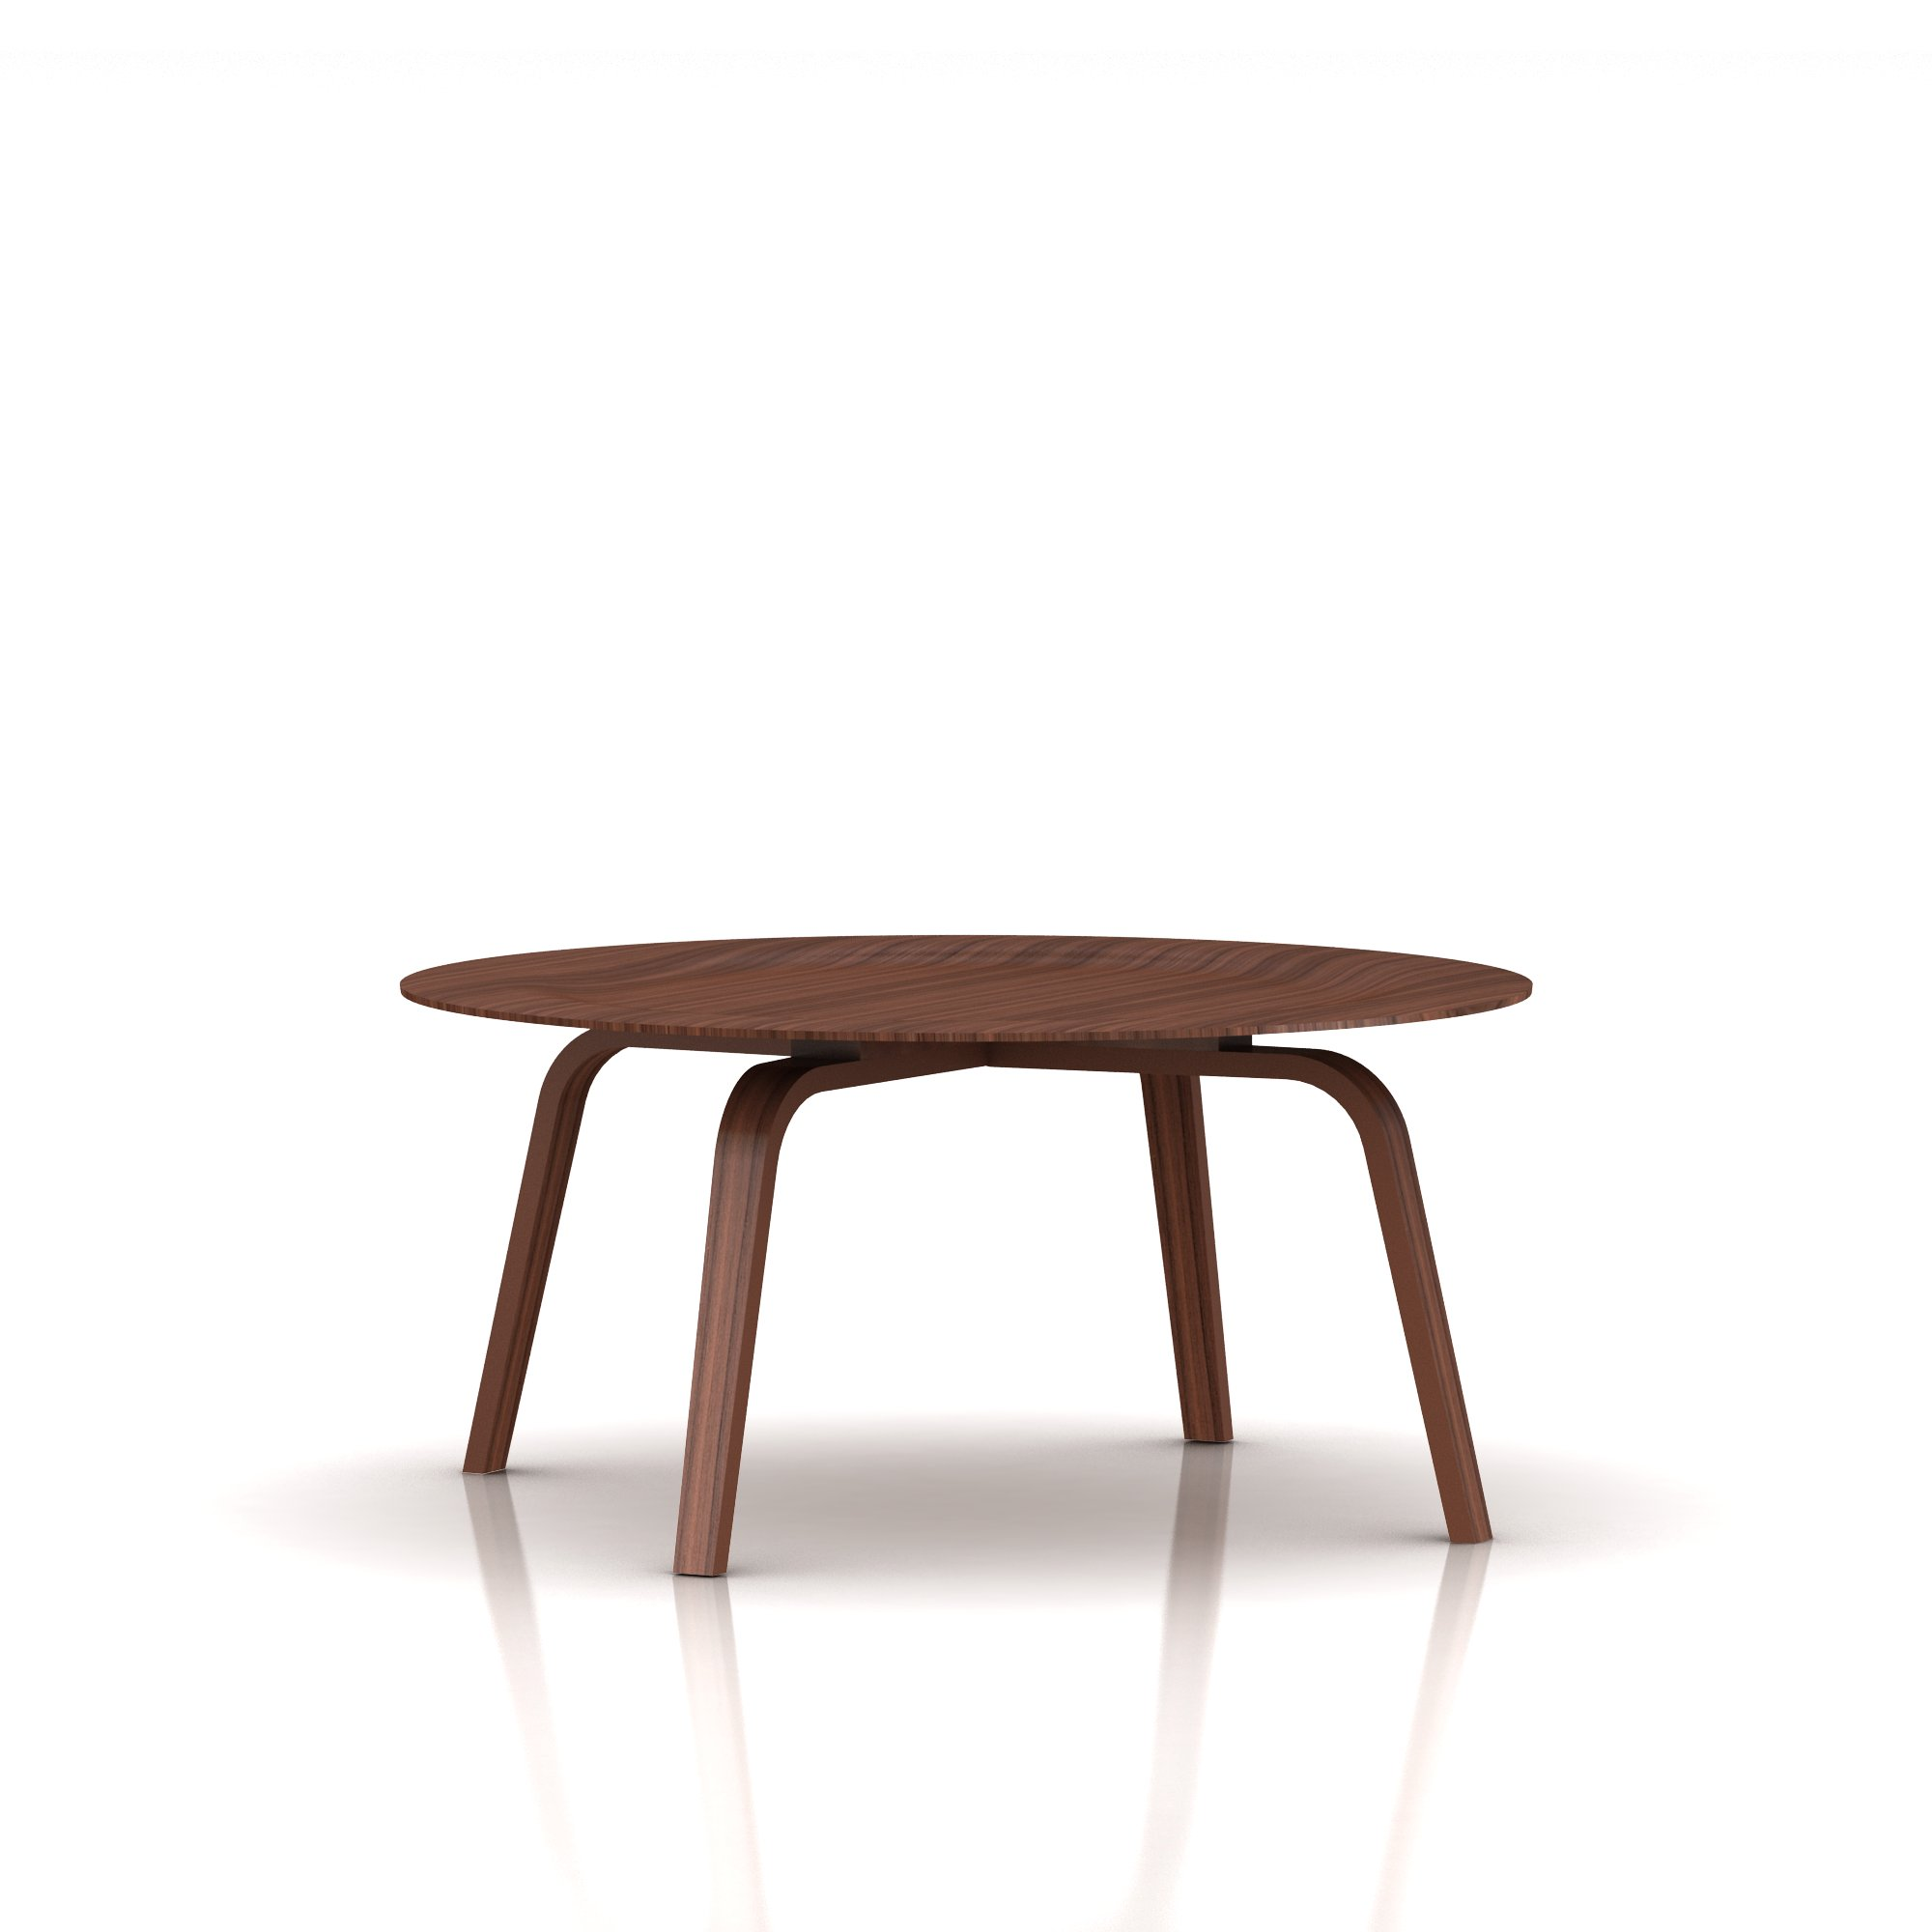 Eames Molded Plywood Coffee Table Wood Base - Item4